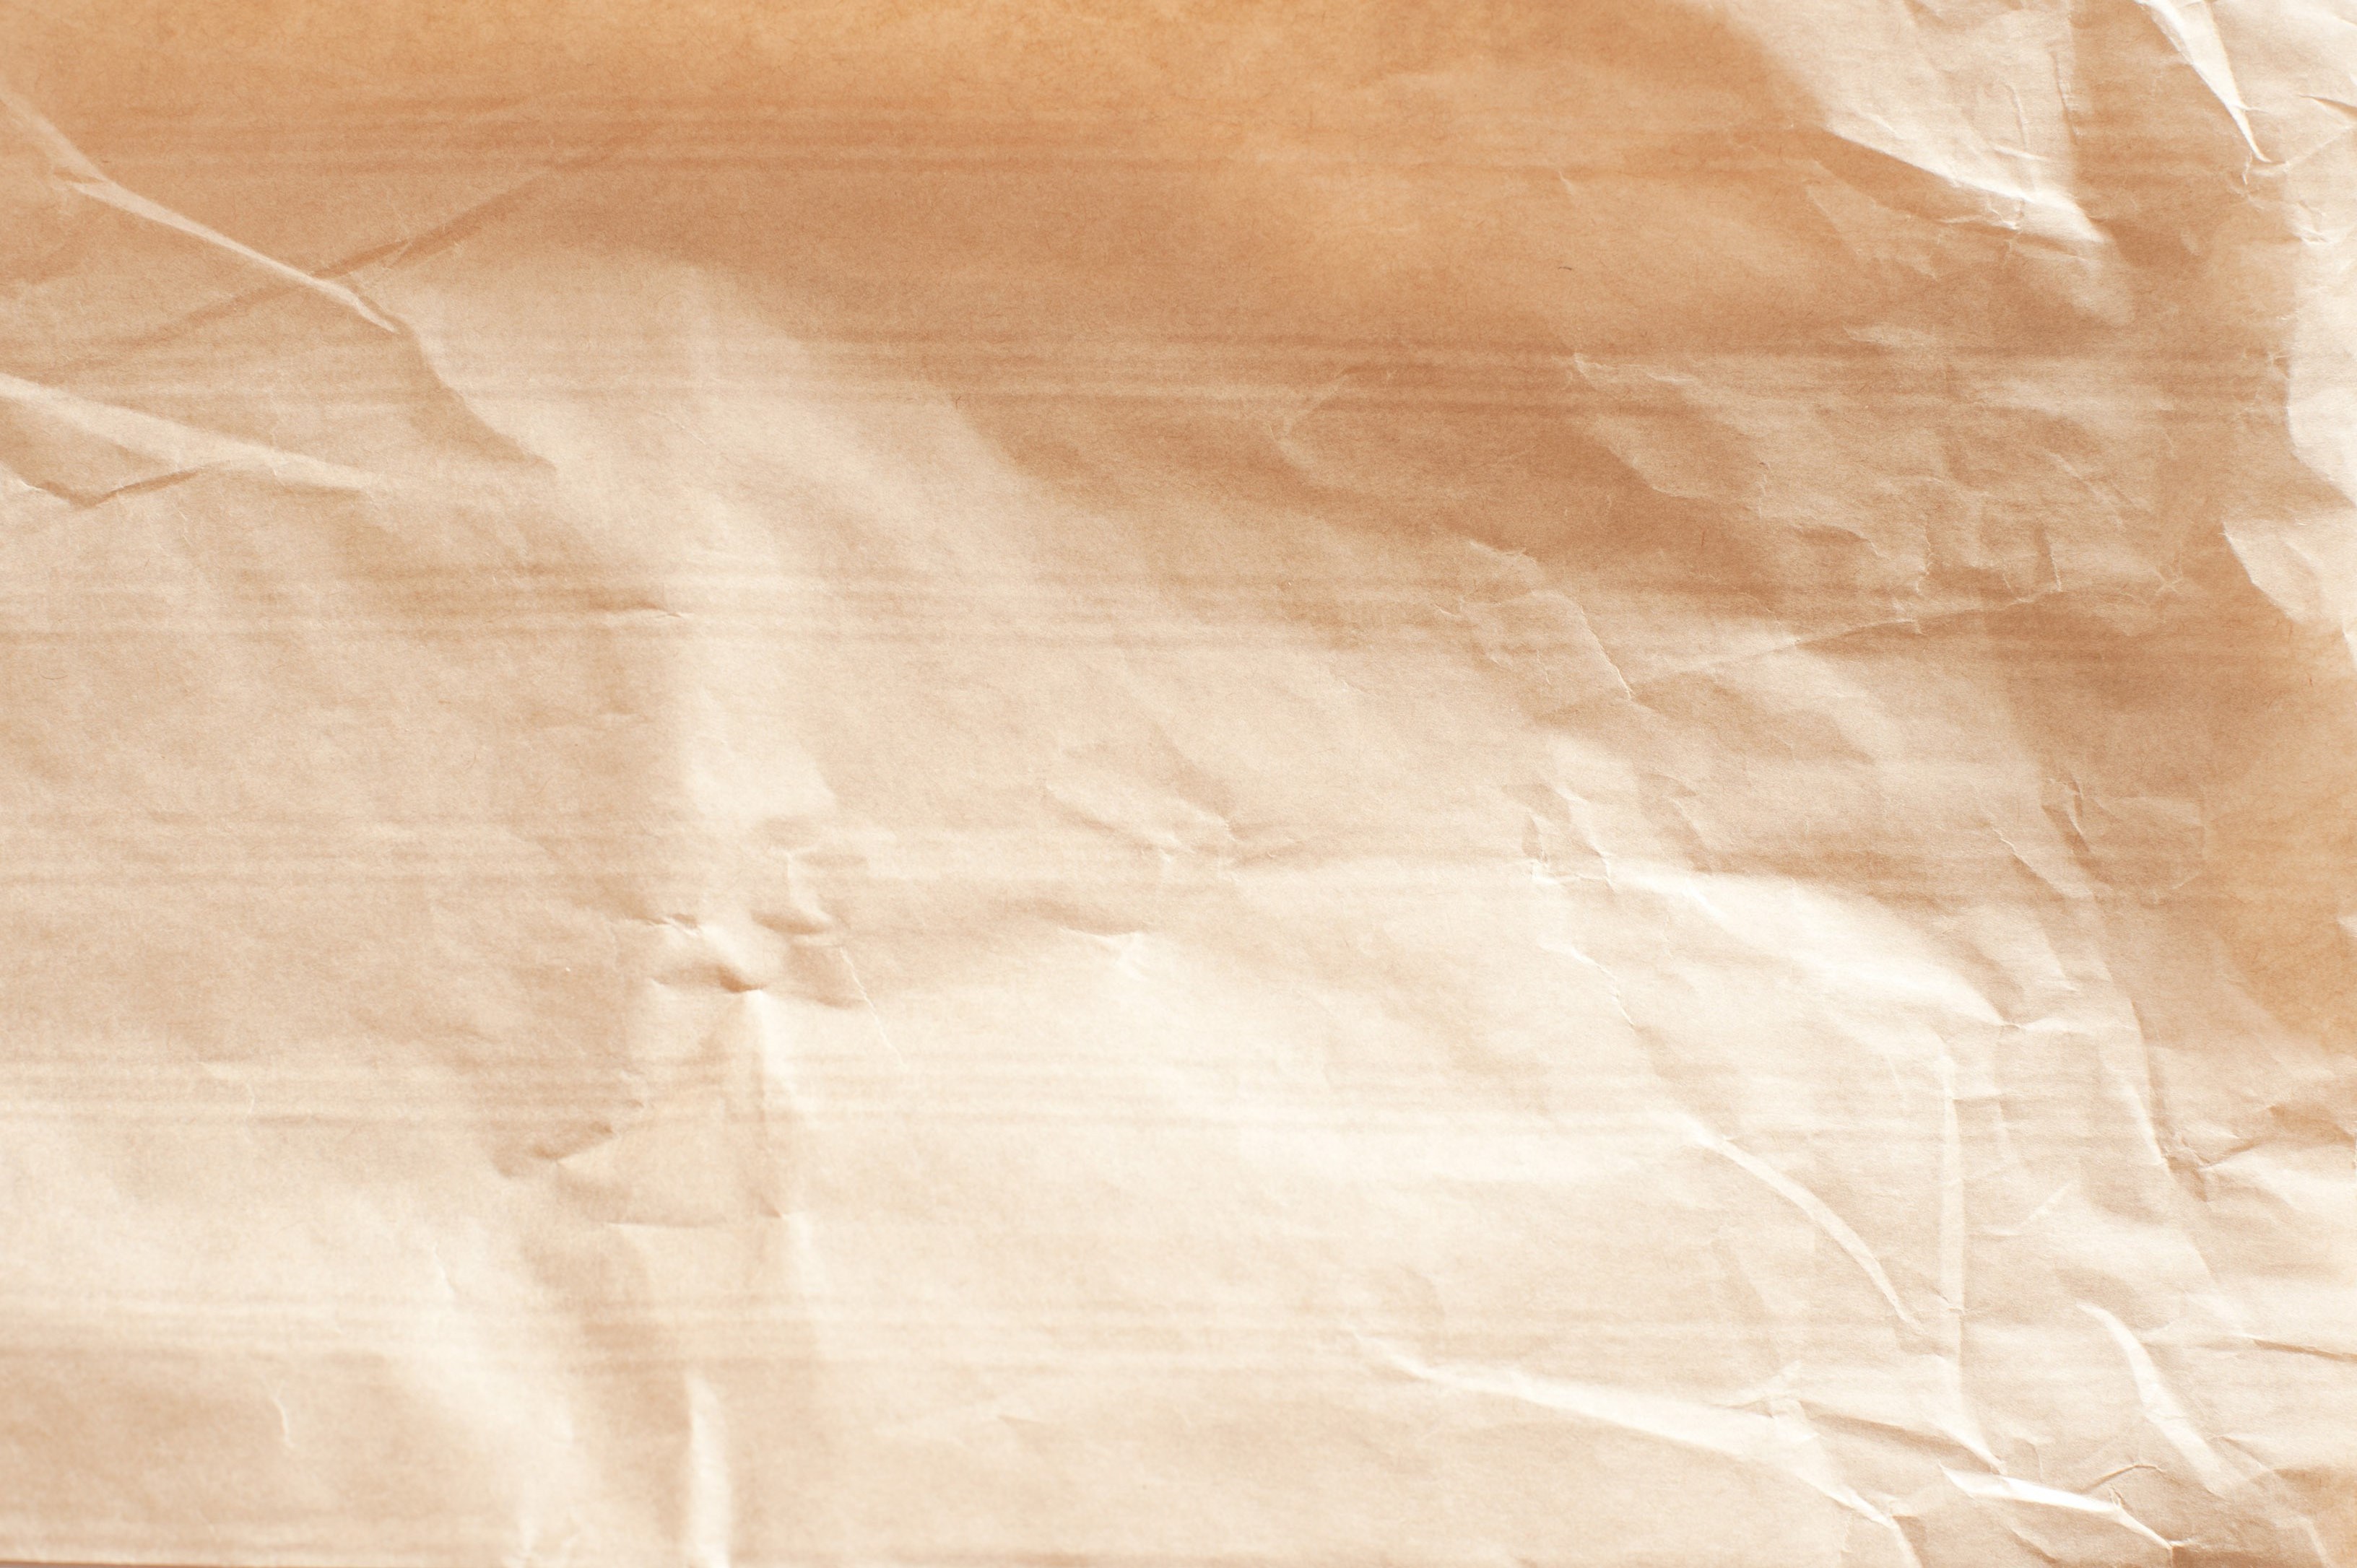 creased and crumpled brown paper surface with horizontal ribs